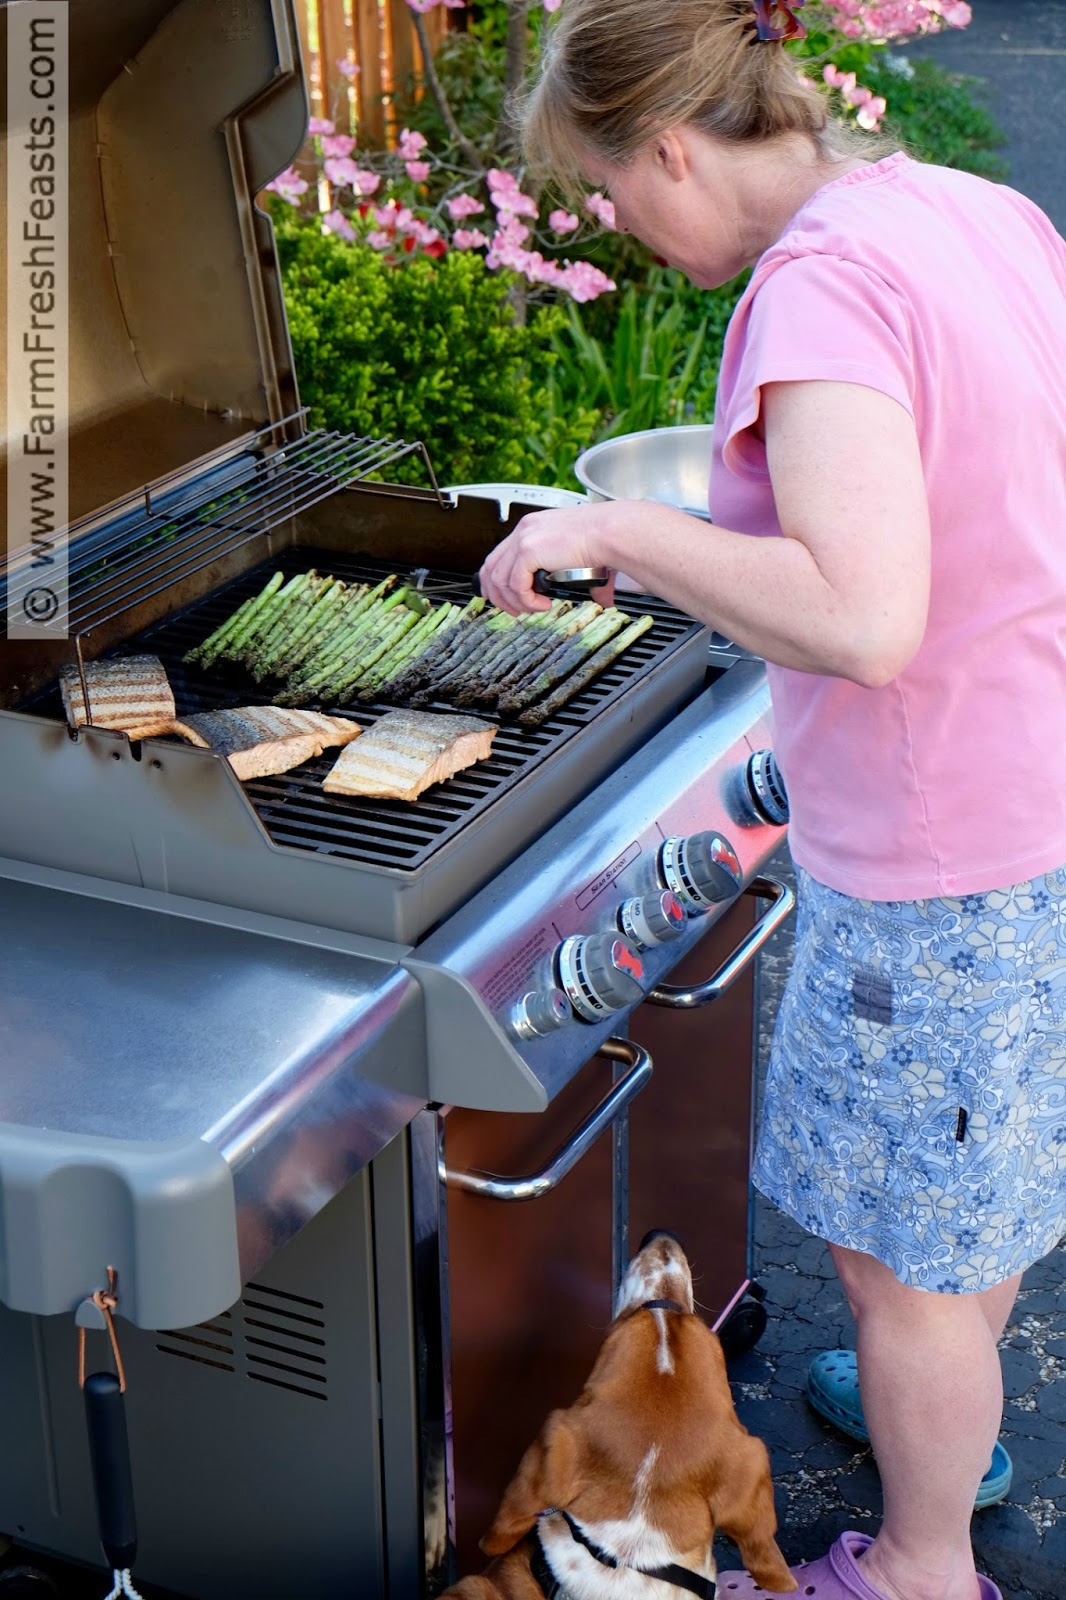 How To Bake Asparagus Use The Right Tools For The Job To Grill A Father's  Day